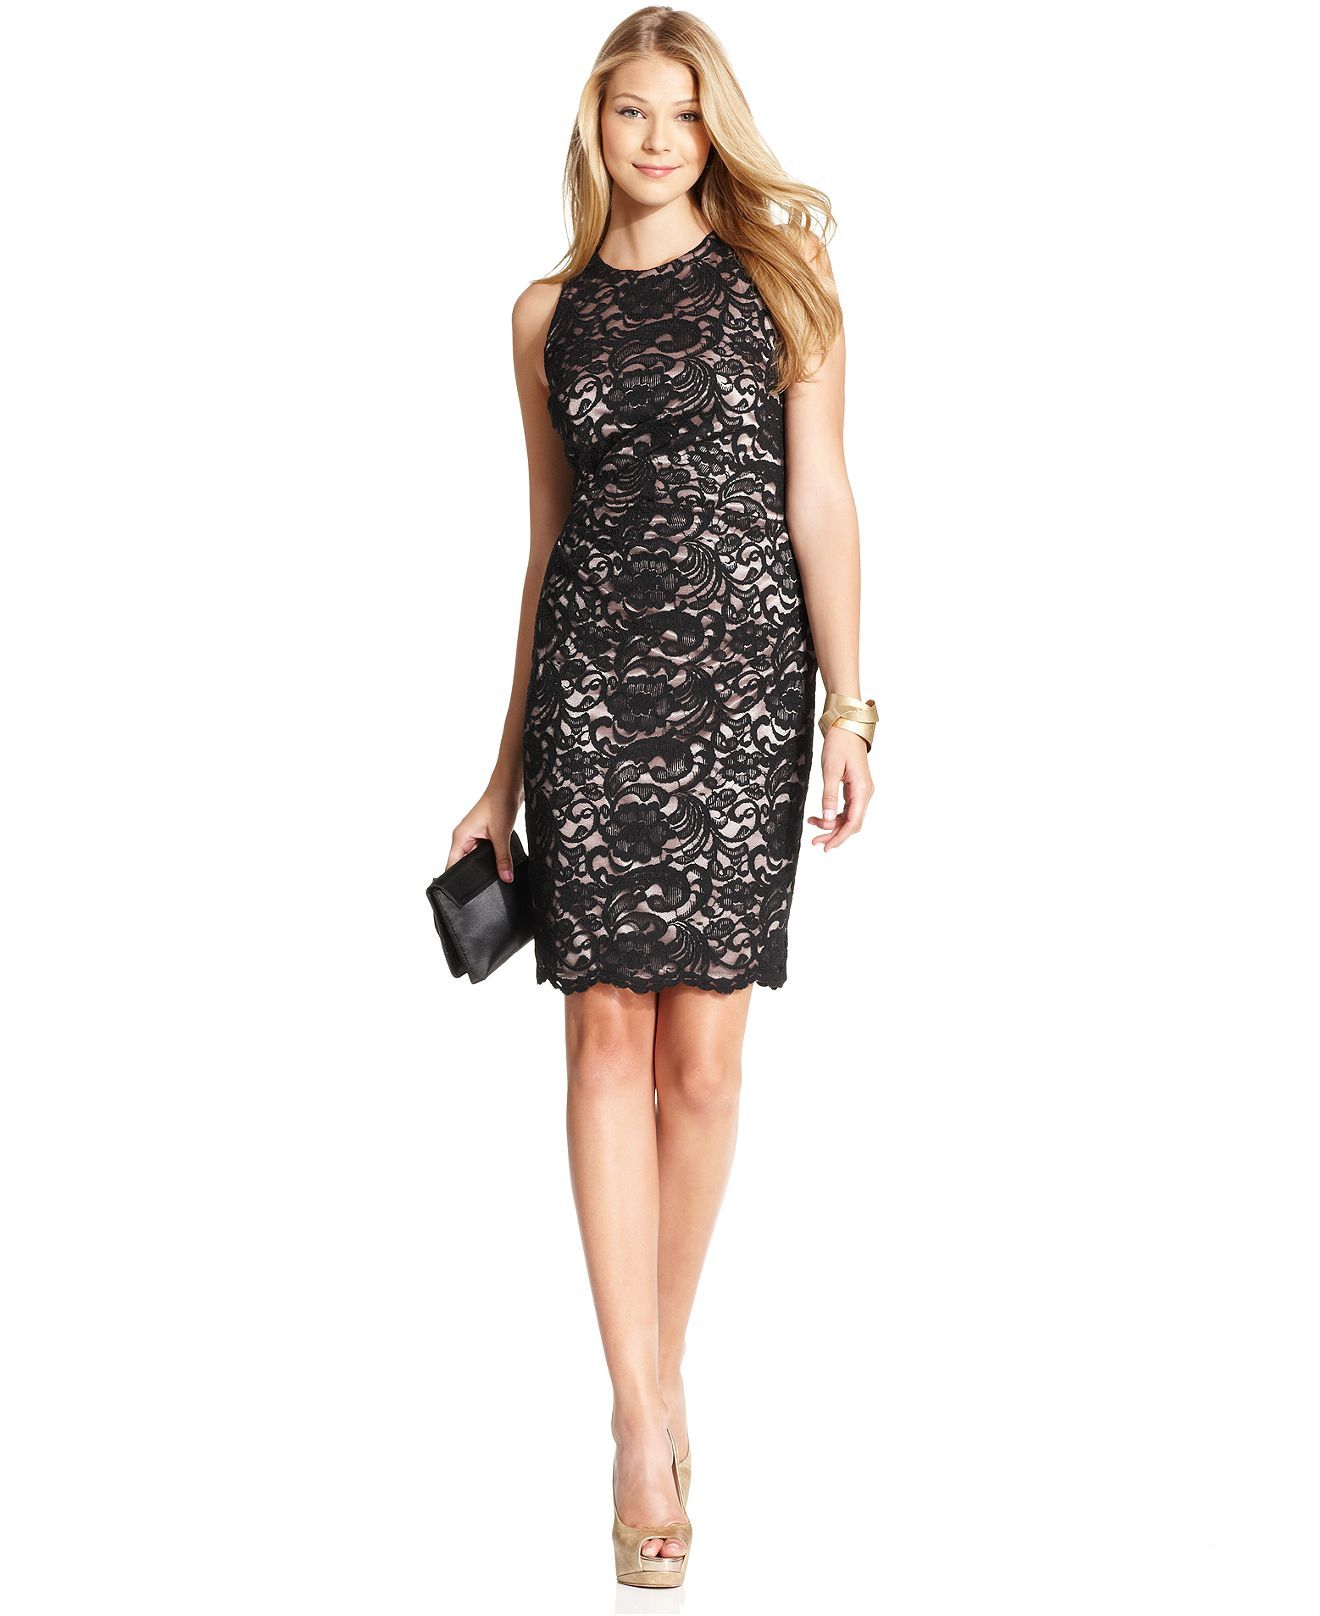 Xscape Dress Sleeveless Lace Cocktail Sheath Womens Dresses